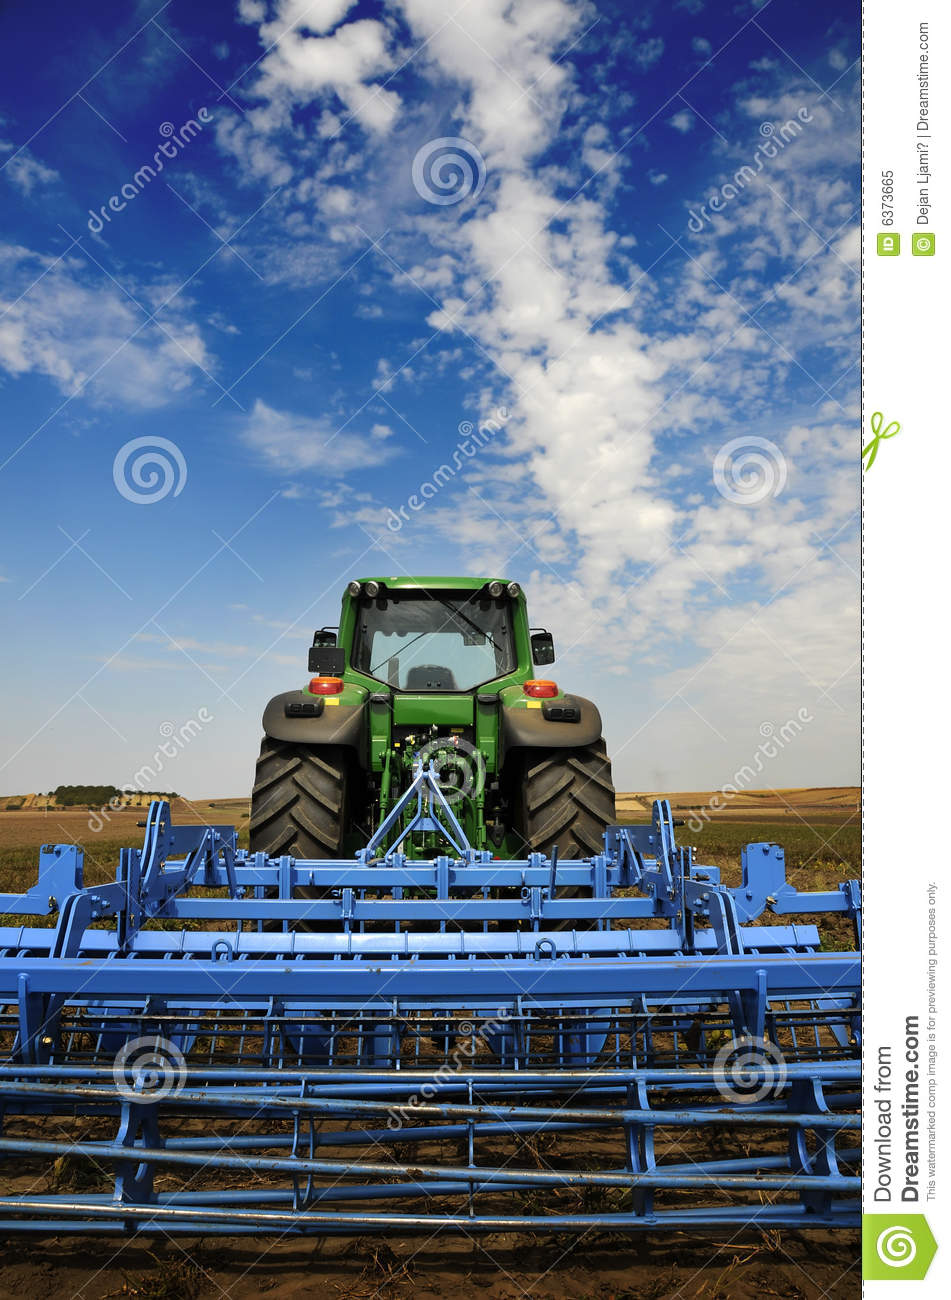 Tractor - modern agriculture equipment